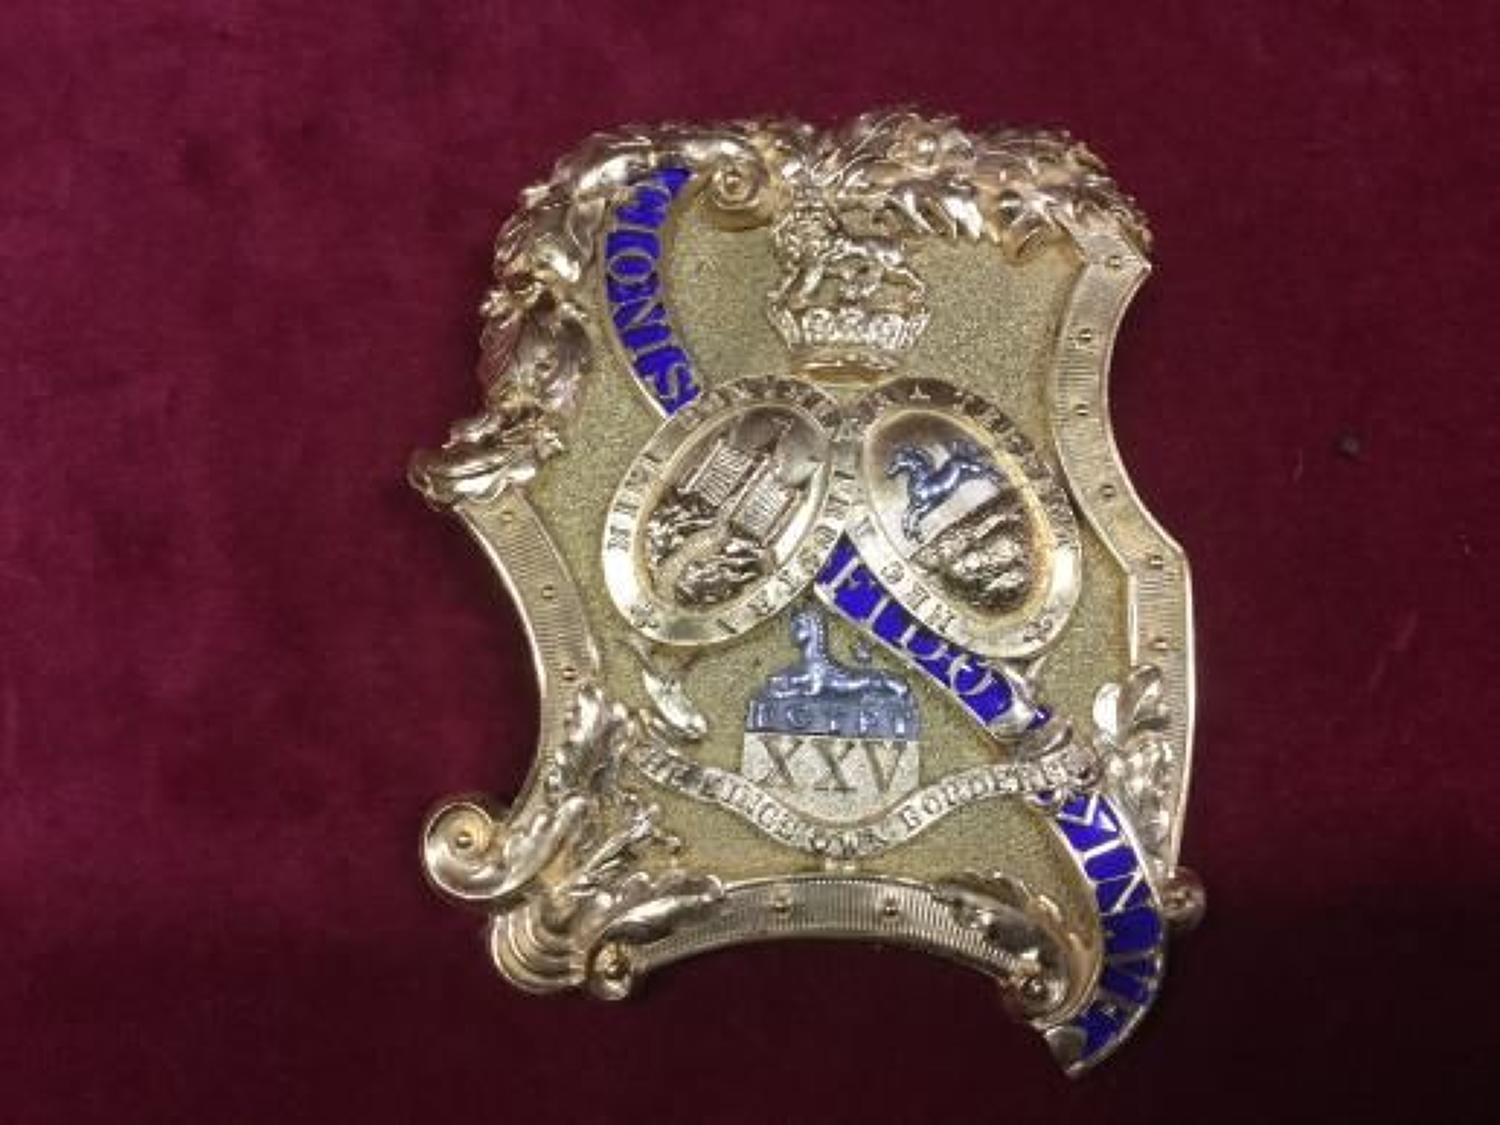 25th Foot Regiment 'Kings Own Borderers' Shoulder Belt Plate